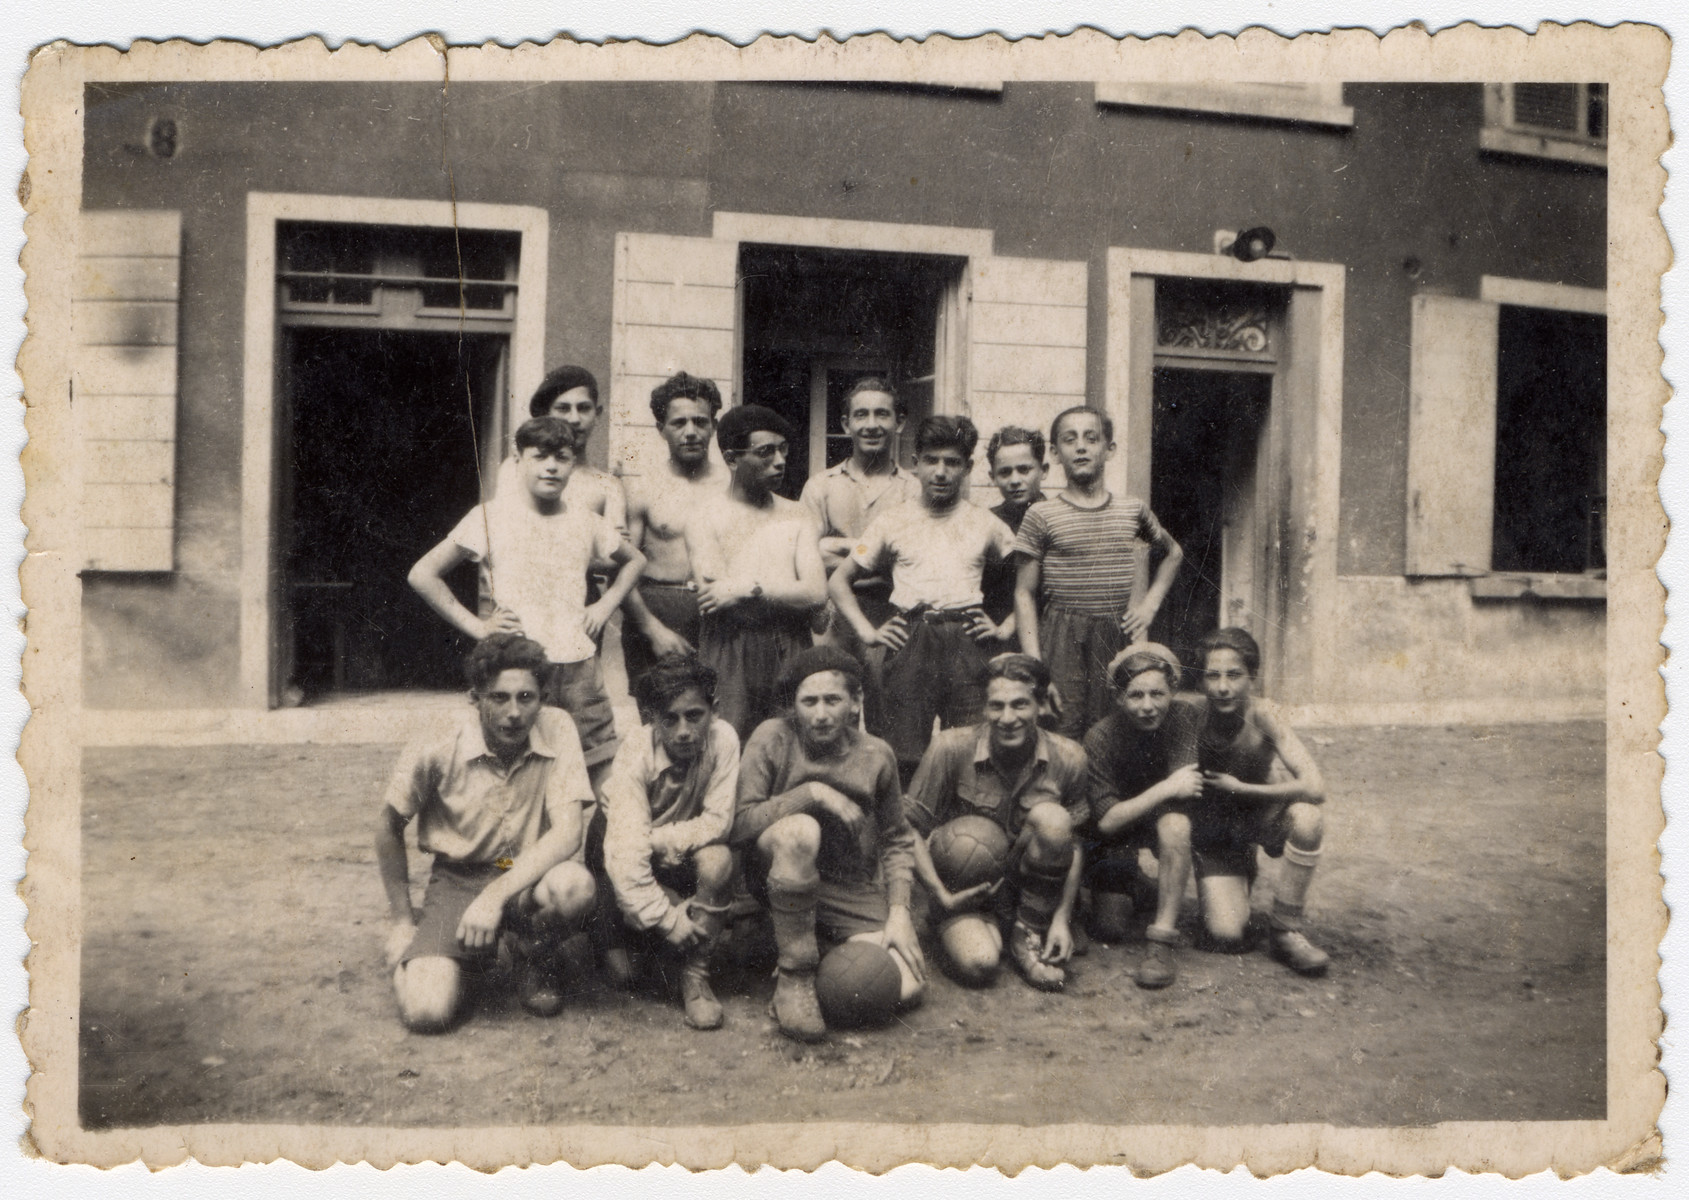 Group portrait of boys from the Chateau des Morelles children's home.